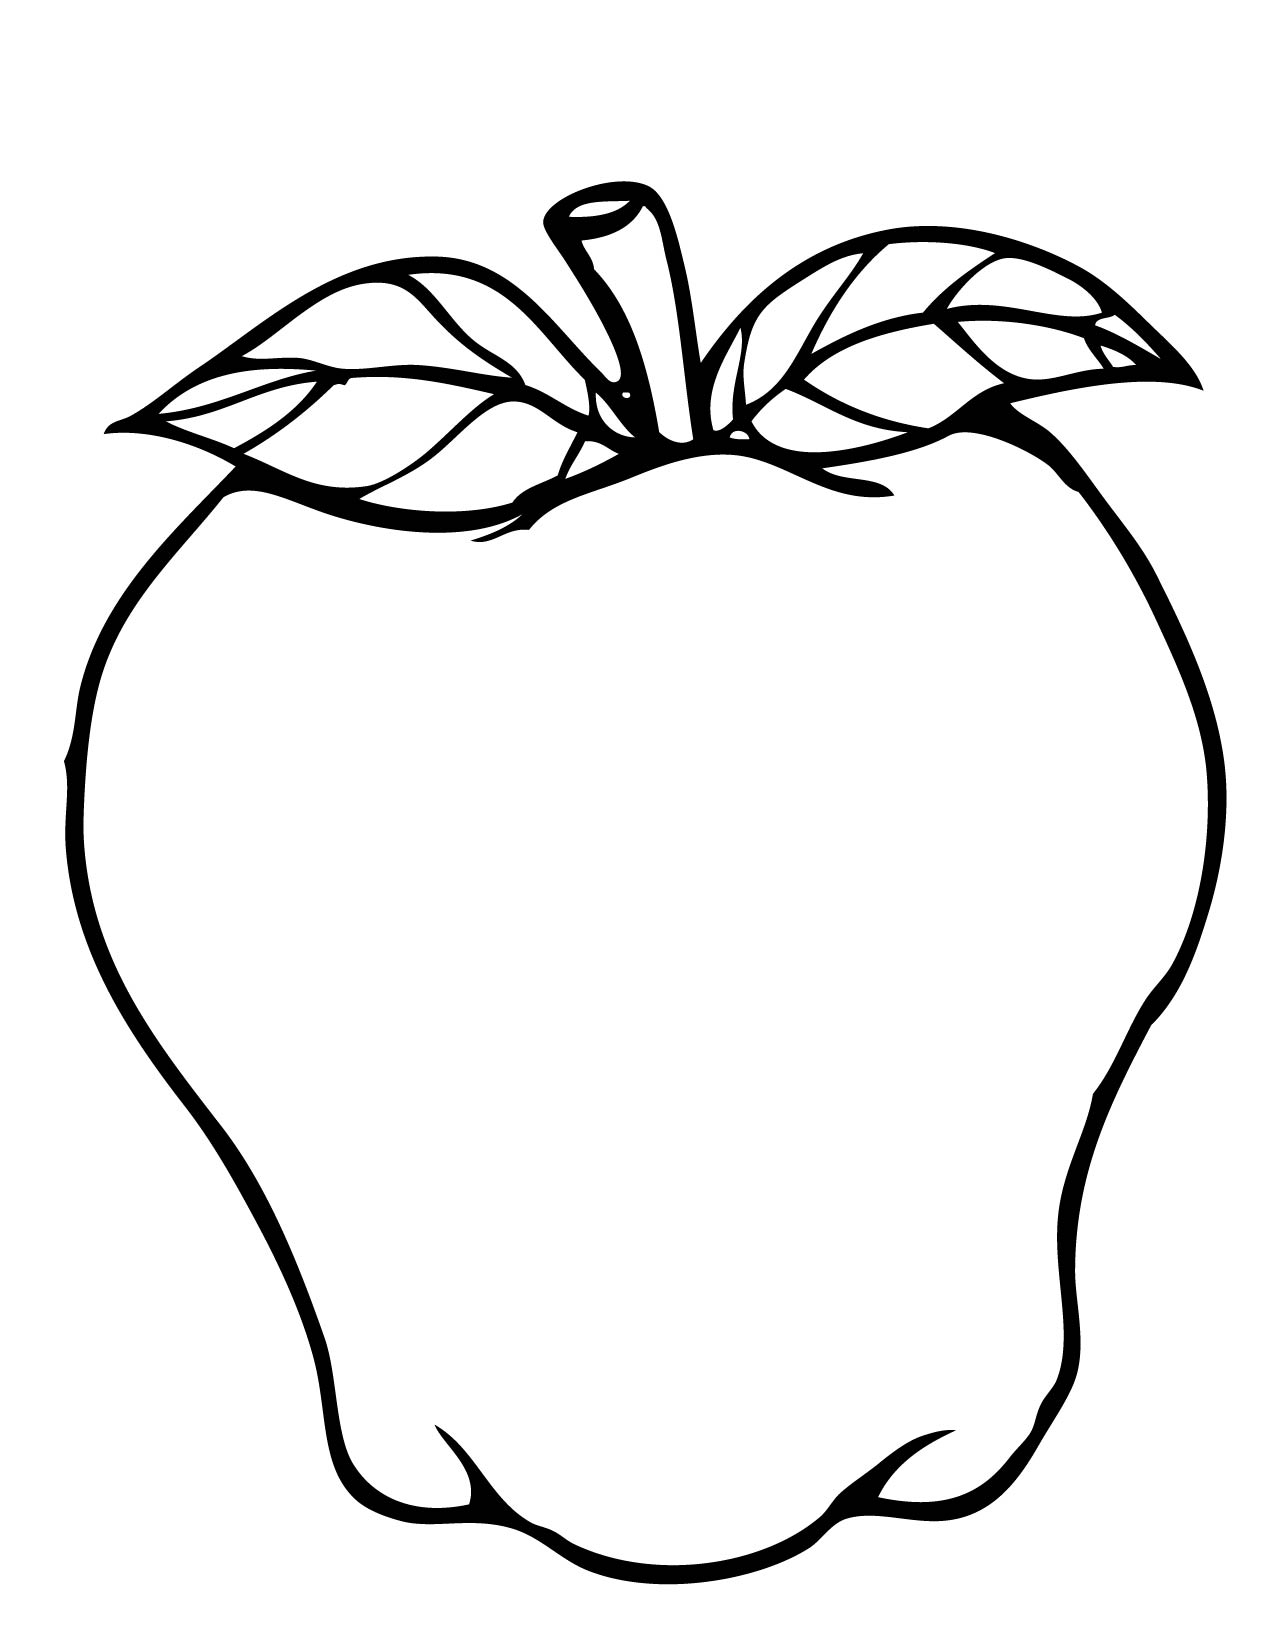 1275x1650 Apple Coloring Pages The Sun Flower